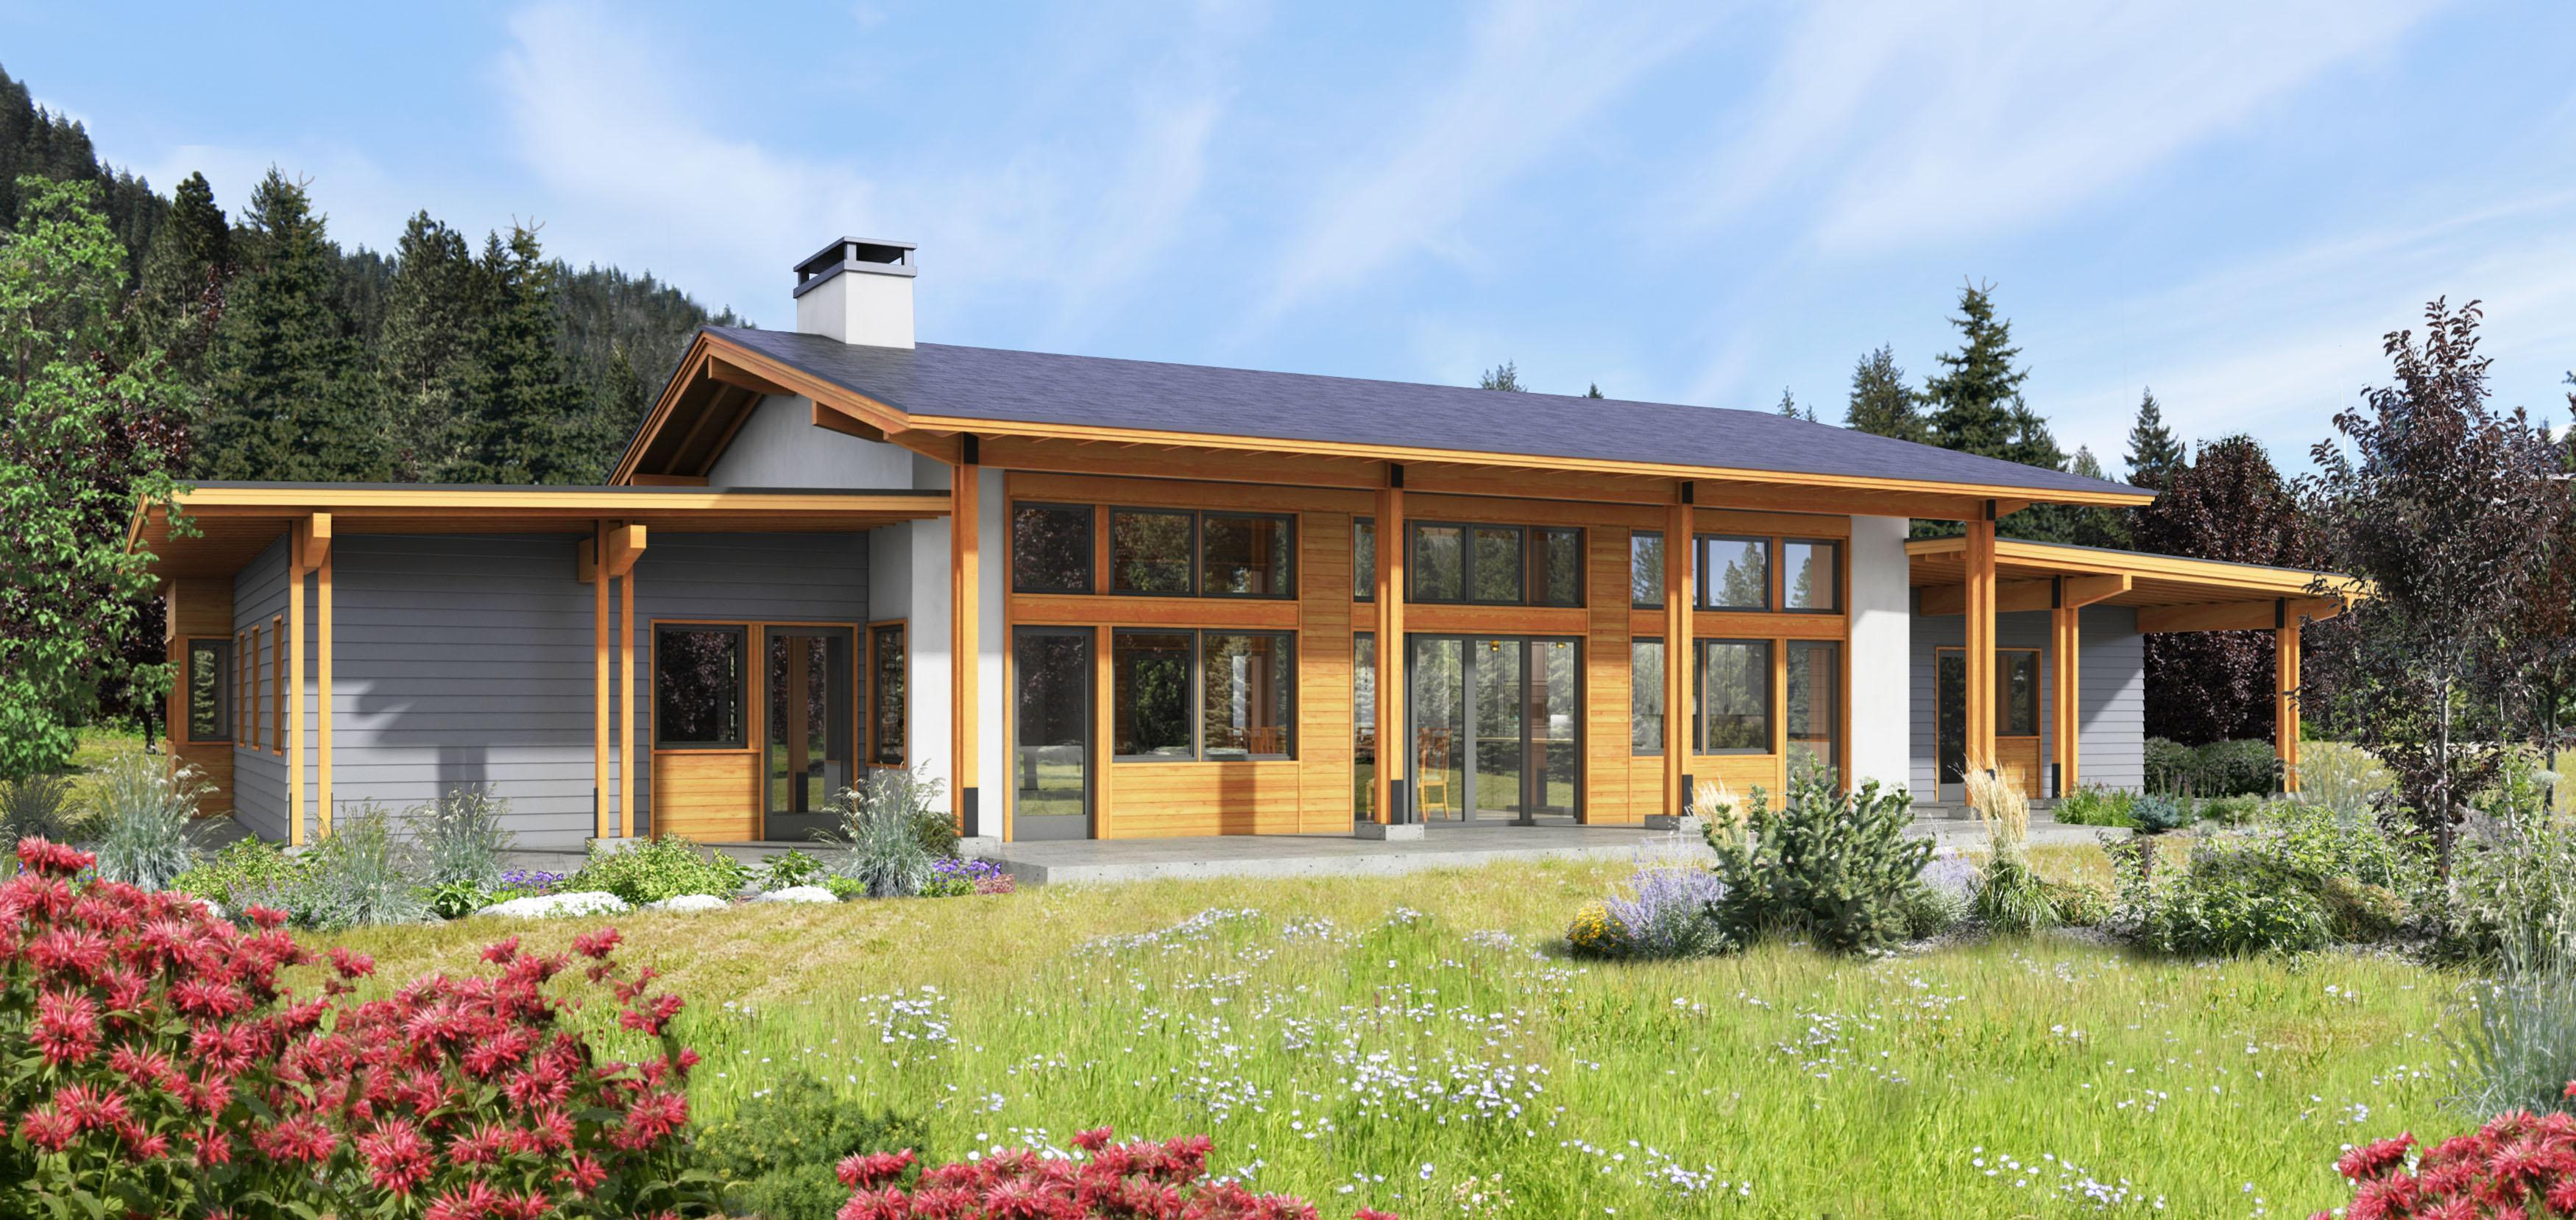 Exterior Rendering of Leavenworth House 06